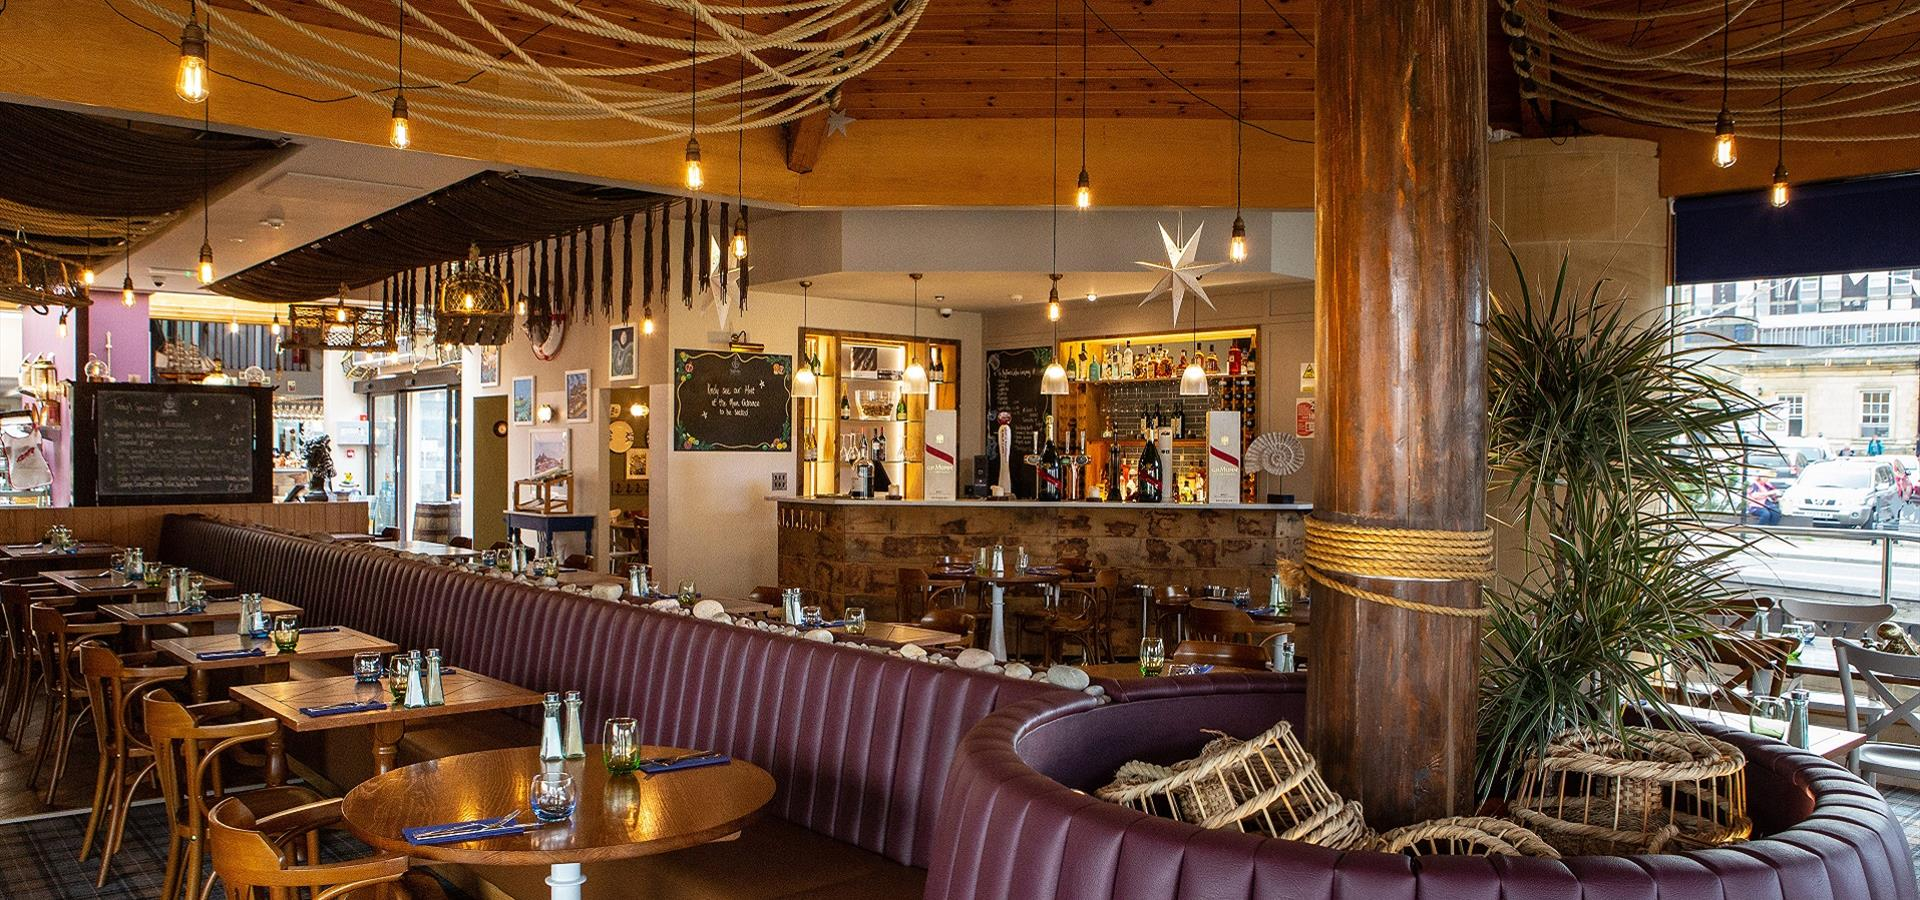 An image of Whitby Restaurant Bar by Ravage Productions